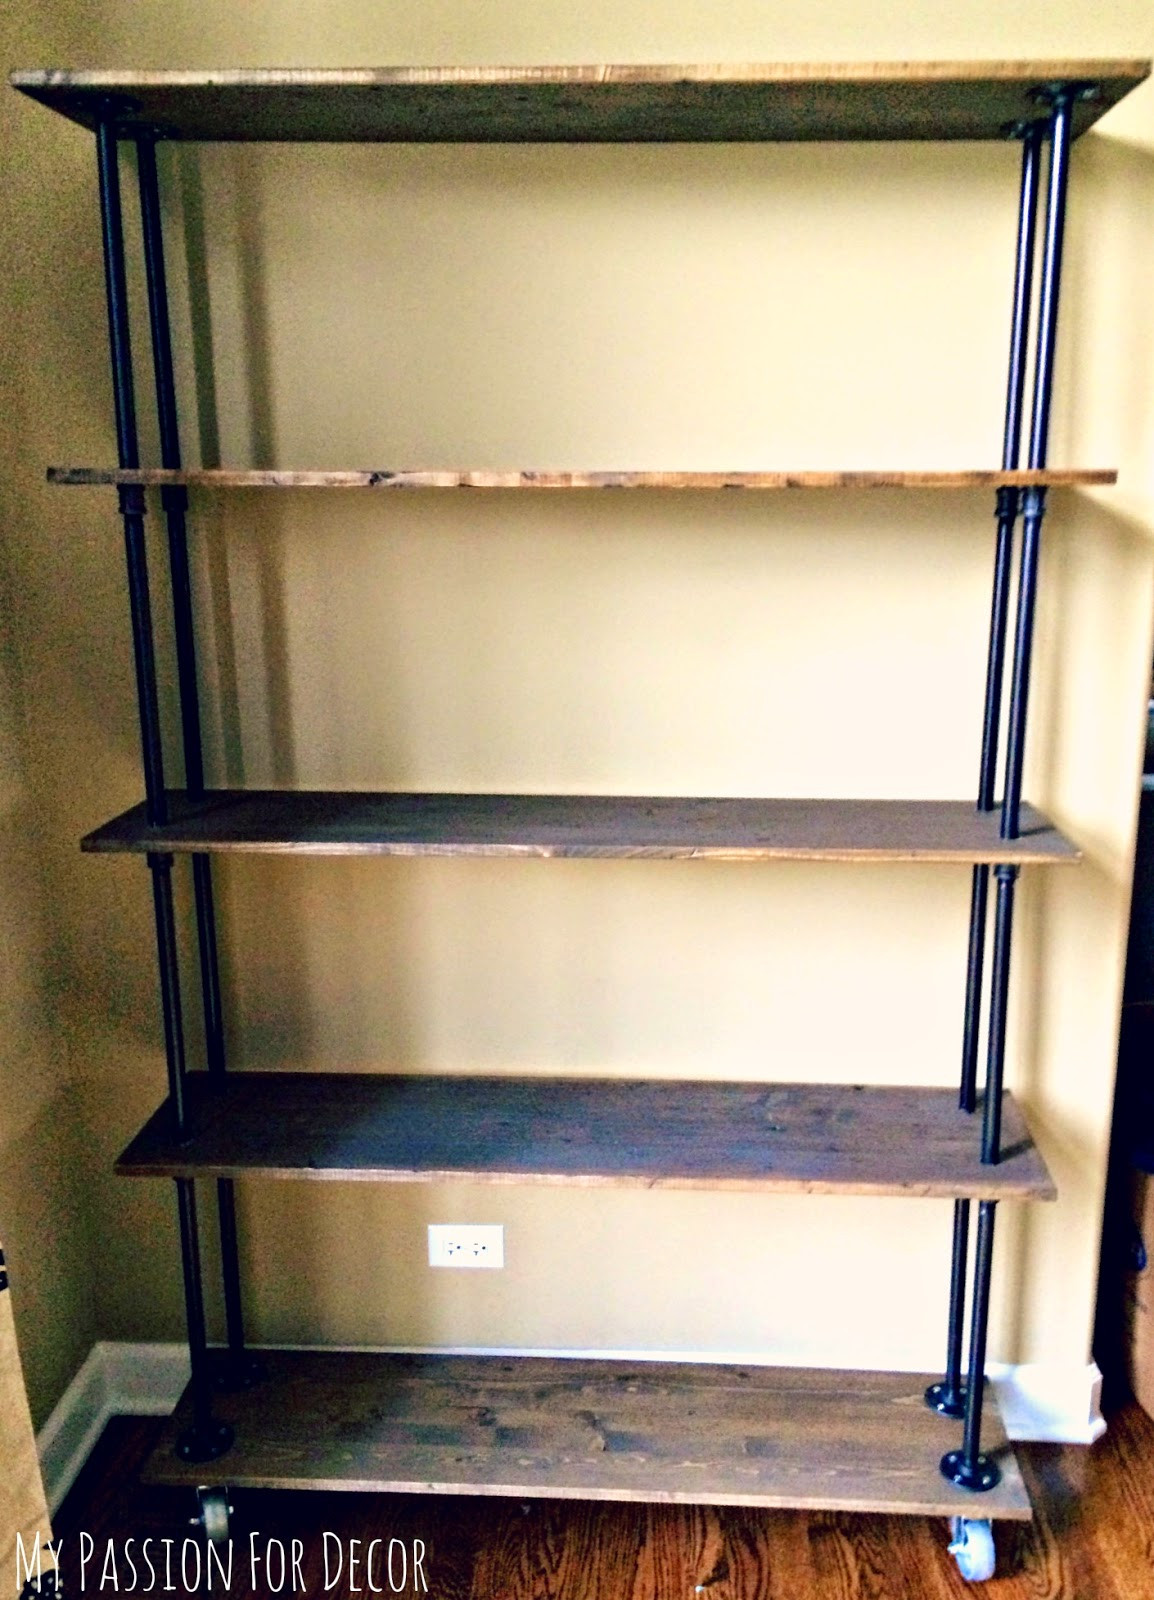 DIY Pipe And Wood Shelves  My Passion For Decor DIY Industrial Pipe and Wood Shelving